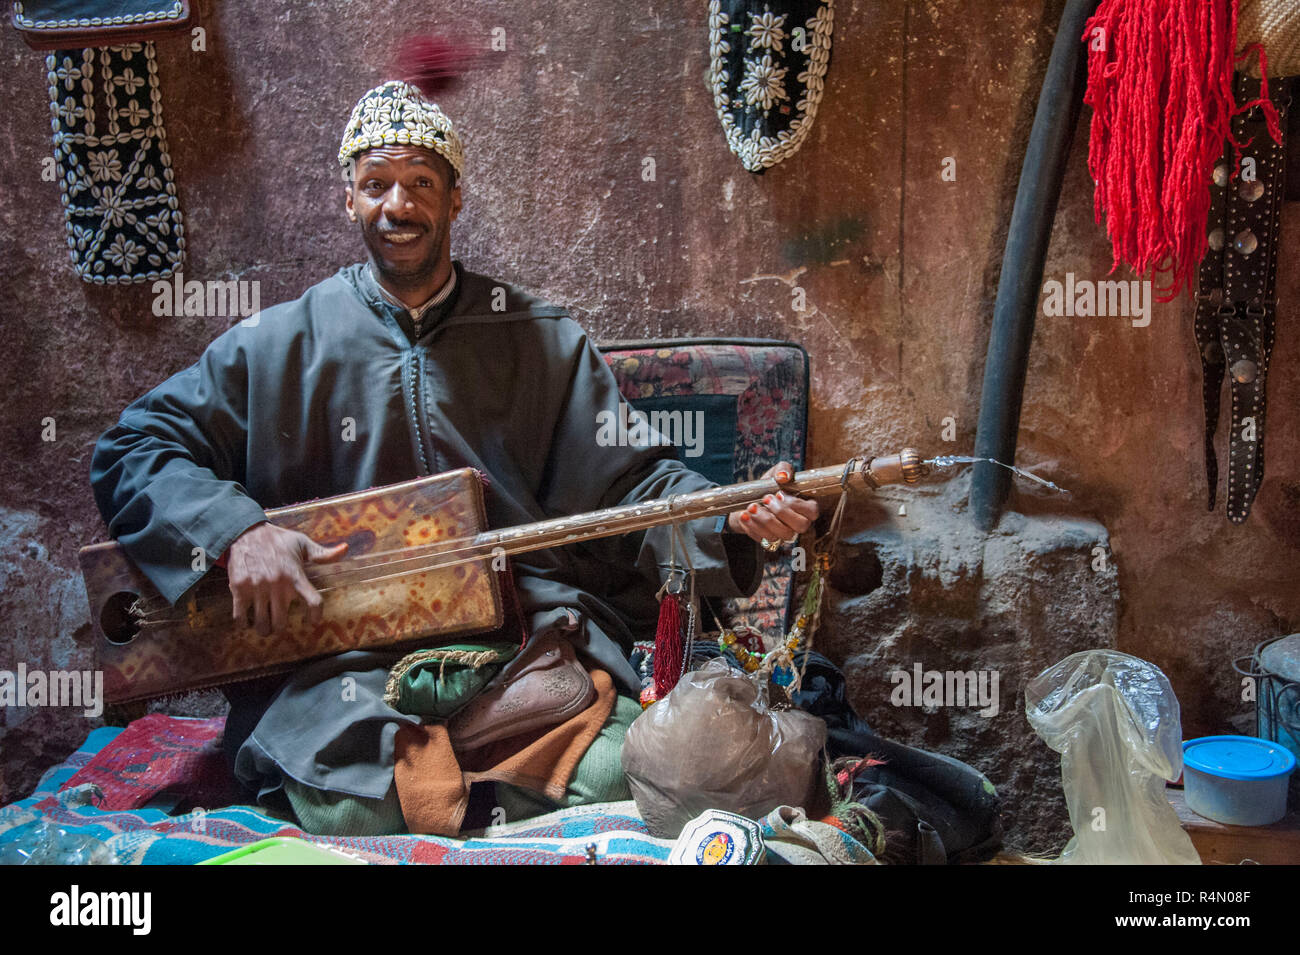 18-04-11. Marrakech, Morocco. A musician sitting cross legged and playing a traditional three stringed guembri musical instrument. He wears a fez hat - Stock Image